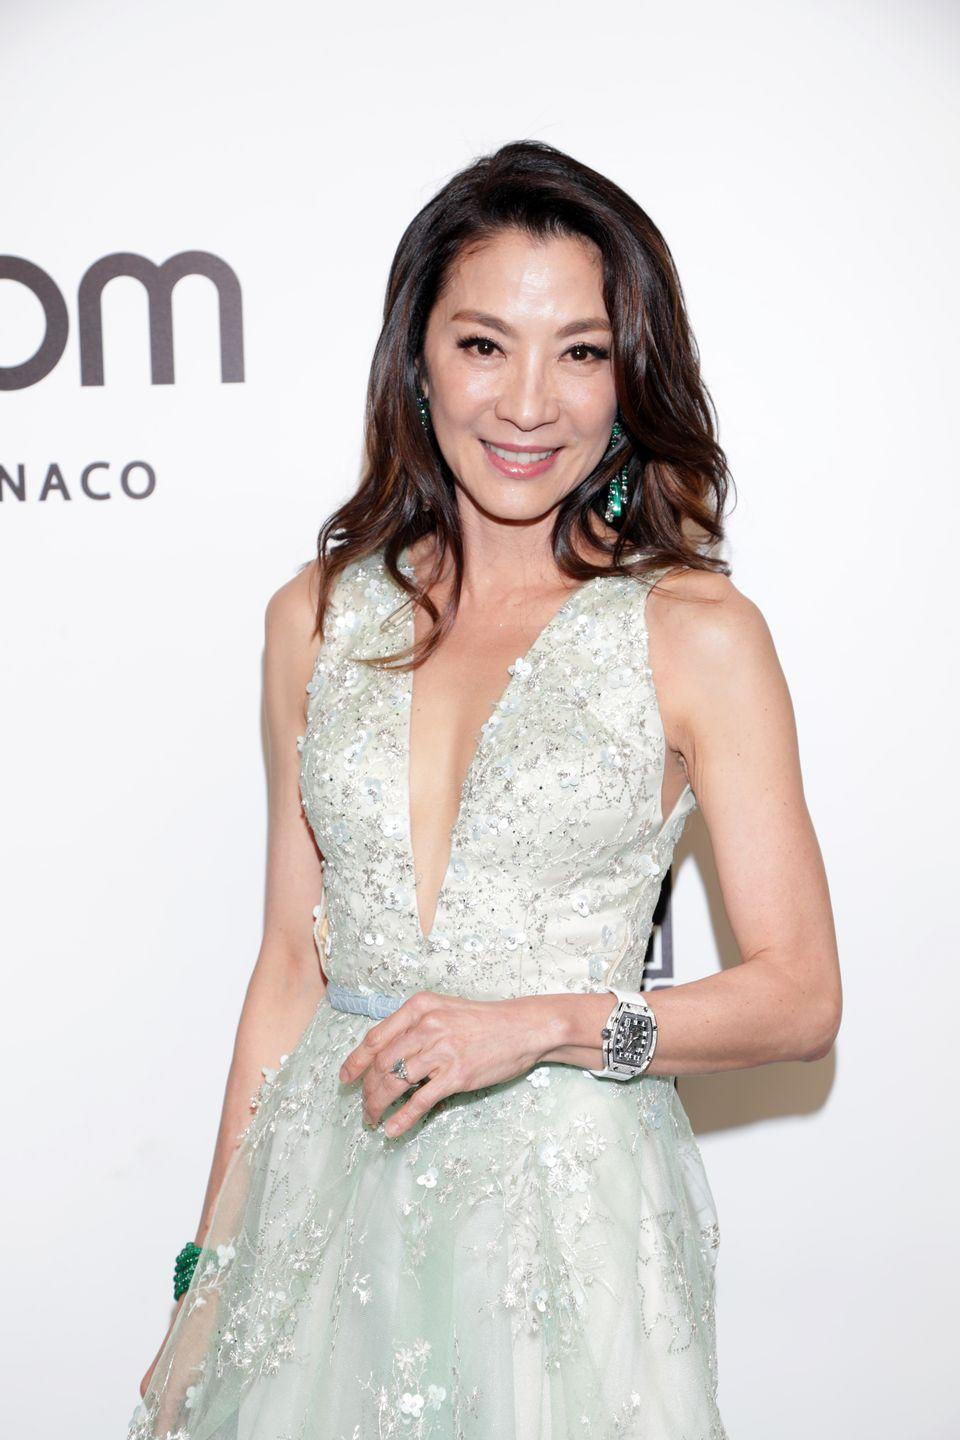 """<p>Bond girl Michelle Yeoh started her ballet training at age 4, and at 15, she studied at the UK's prestigious Royal Academy of Dance. Unfortunately, her ballet career was cut short in college after she <a href=""""http://michelleyeoh.info/Bio/bio.html"""" rel=""""nofollow noopener"""" target=""""_blank"""" data-ylk=""""slk:suffered a spinal injury"""" class=""""link rapid-noclick-resp"""">suffered a spinal injury</a>. </p><p>After teaching the art, Yeoh found herself in Hong Kong action movies, in which her dance skills proved useful. """"This is like choreography,"""" <a href=""""https://www.vanityfair.com/hollywood/2019/01/michelle-yeoh-crazy-rich-asians-star-trek-interview"""" rel=""""nofollow noopener"""" target=""""_blank"""" data-ylk=""""slk:she told Vanity Fair"""" class=""""link rapid-noclick-resp"""">she told <em>Vanity Fair</em></a><em>. </em>Her acting career landed her roles in Ang Lee's <em>Crouching Tiger, Hidden Dragon </em>and <em>Crazy Rich Asians.</em></p>"""